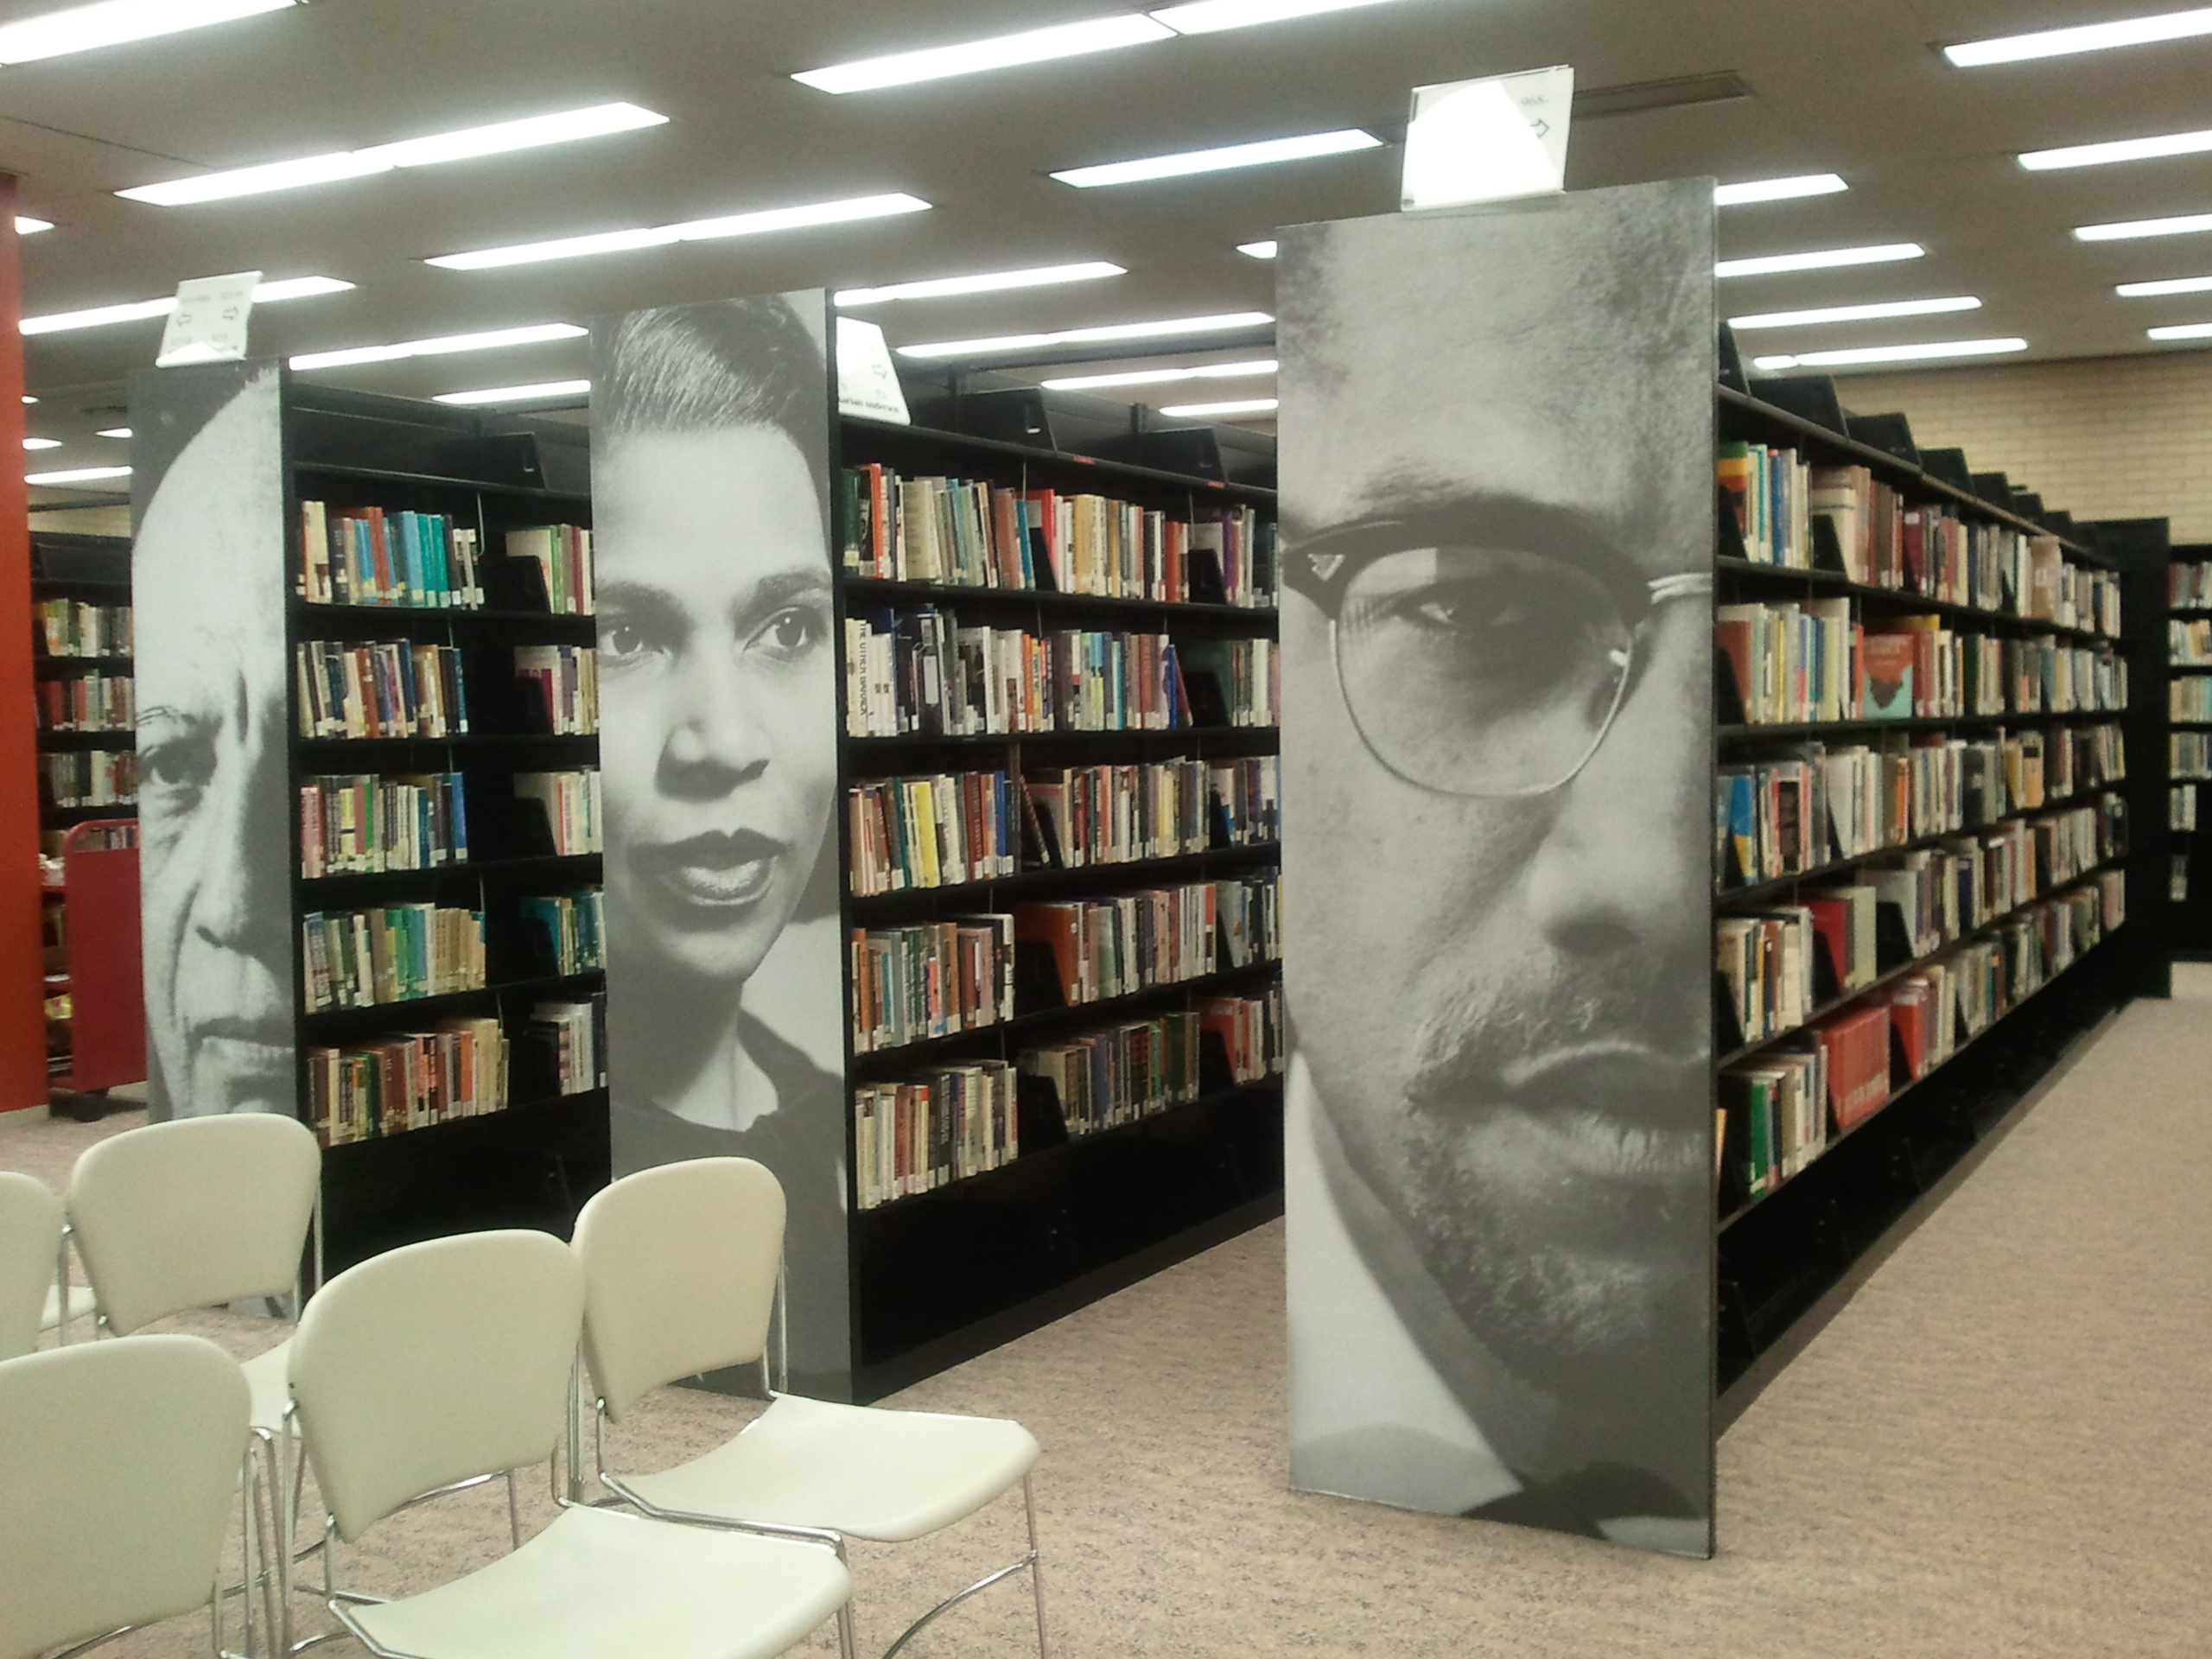 Black Studies Section in the Niagara Falls Public Library